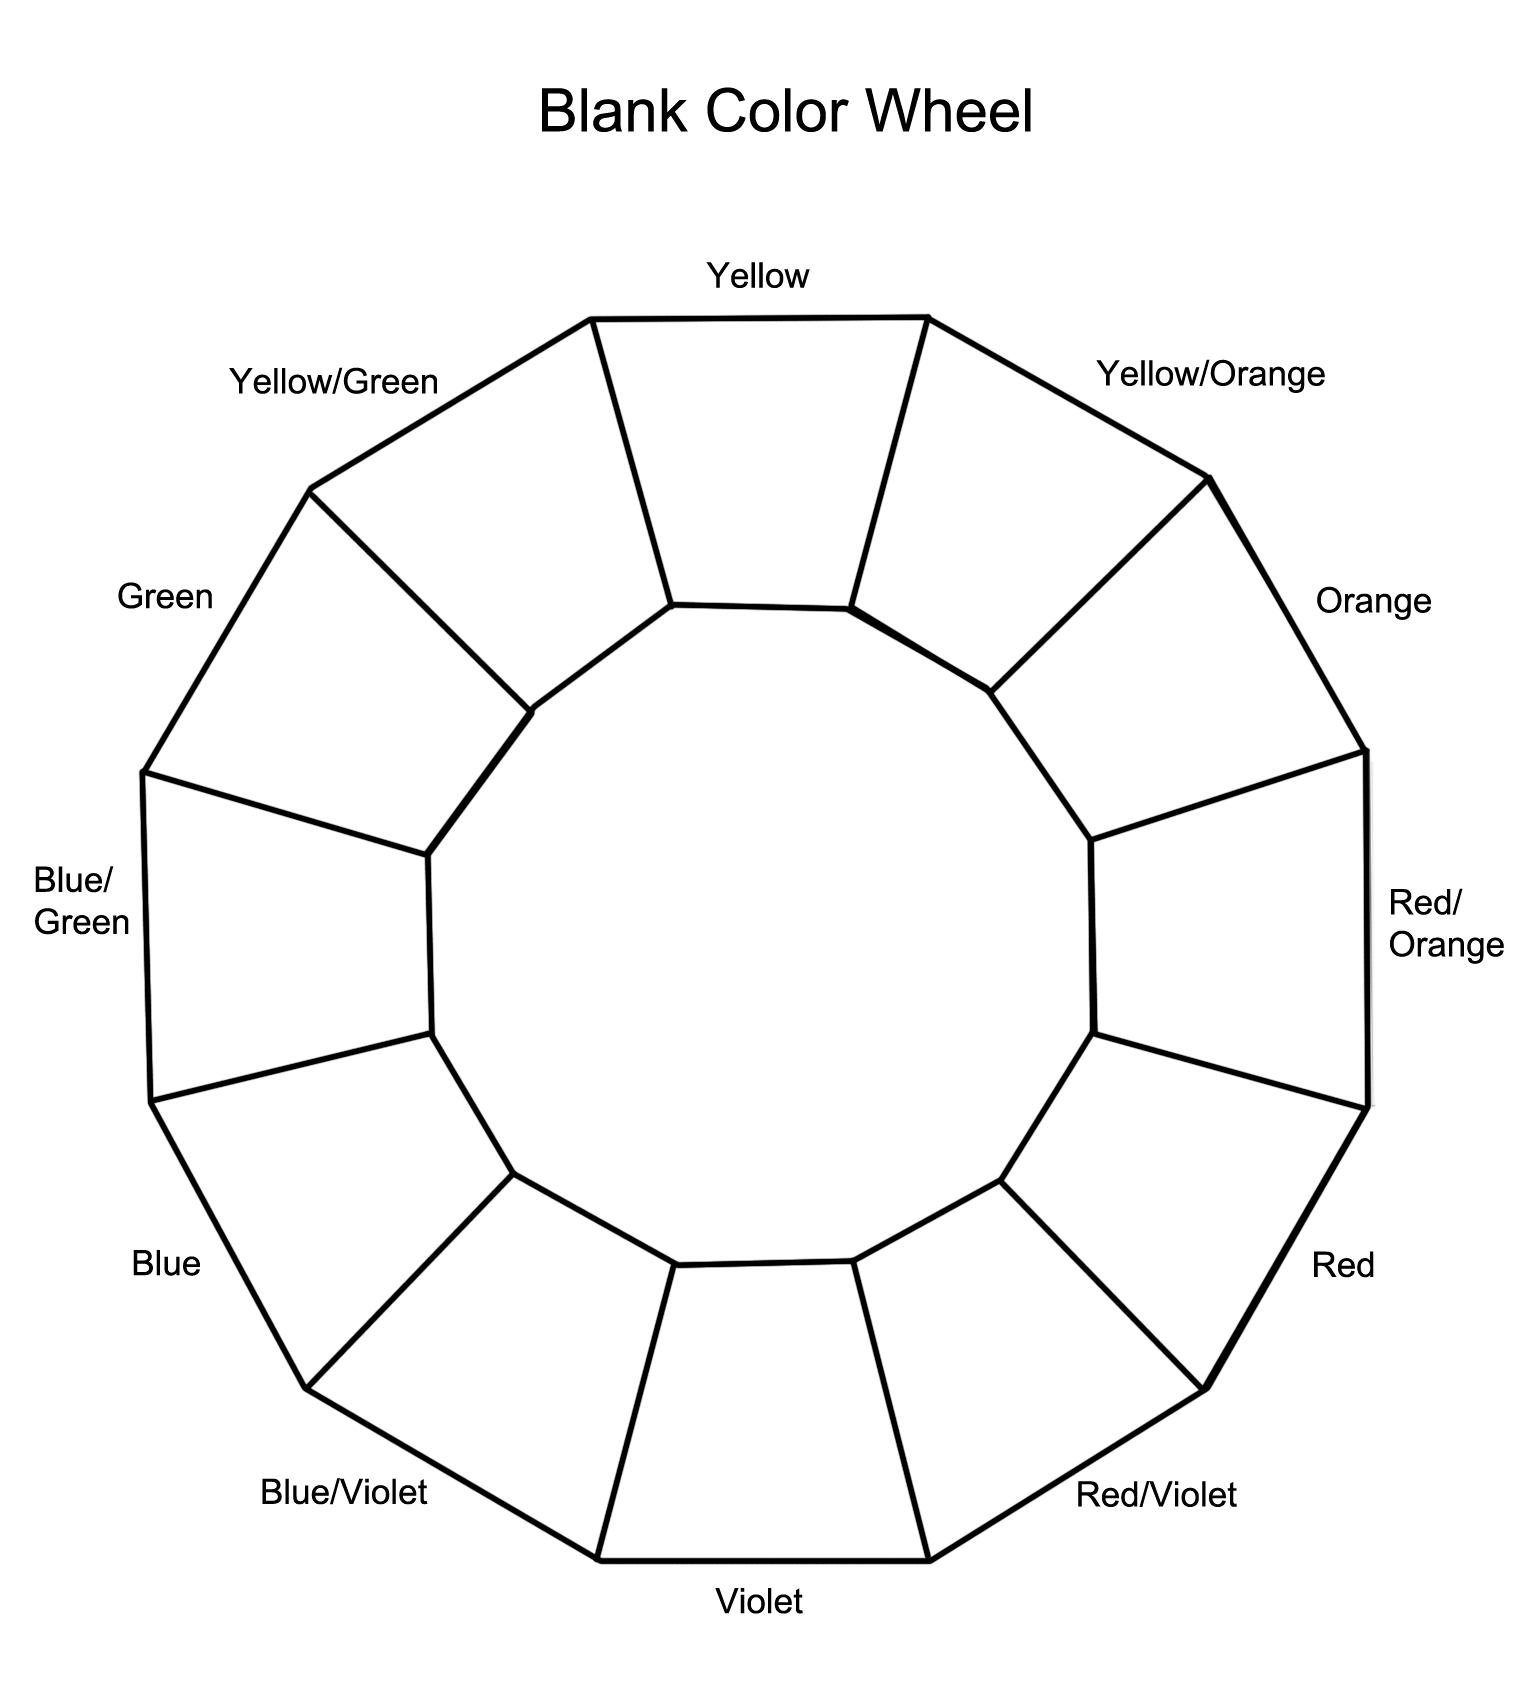 Color theory worksheet for kids - 12 Section Colour Wheel Free Pictures